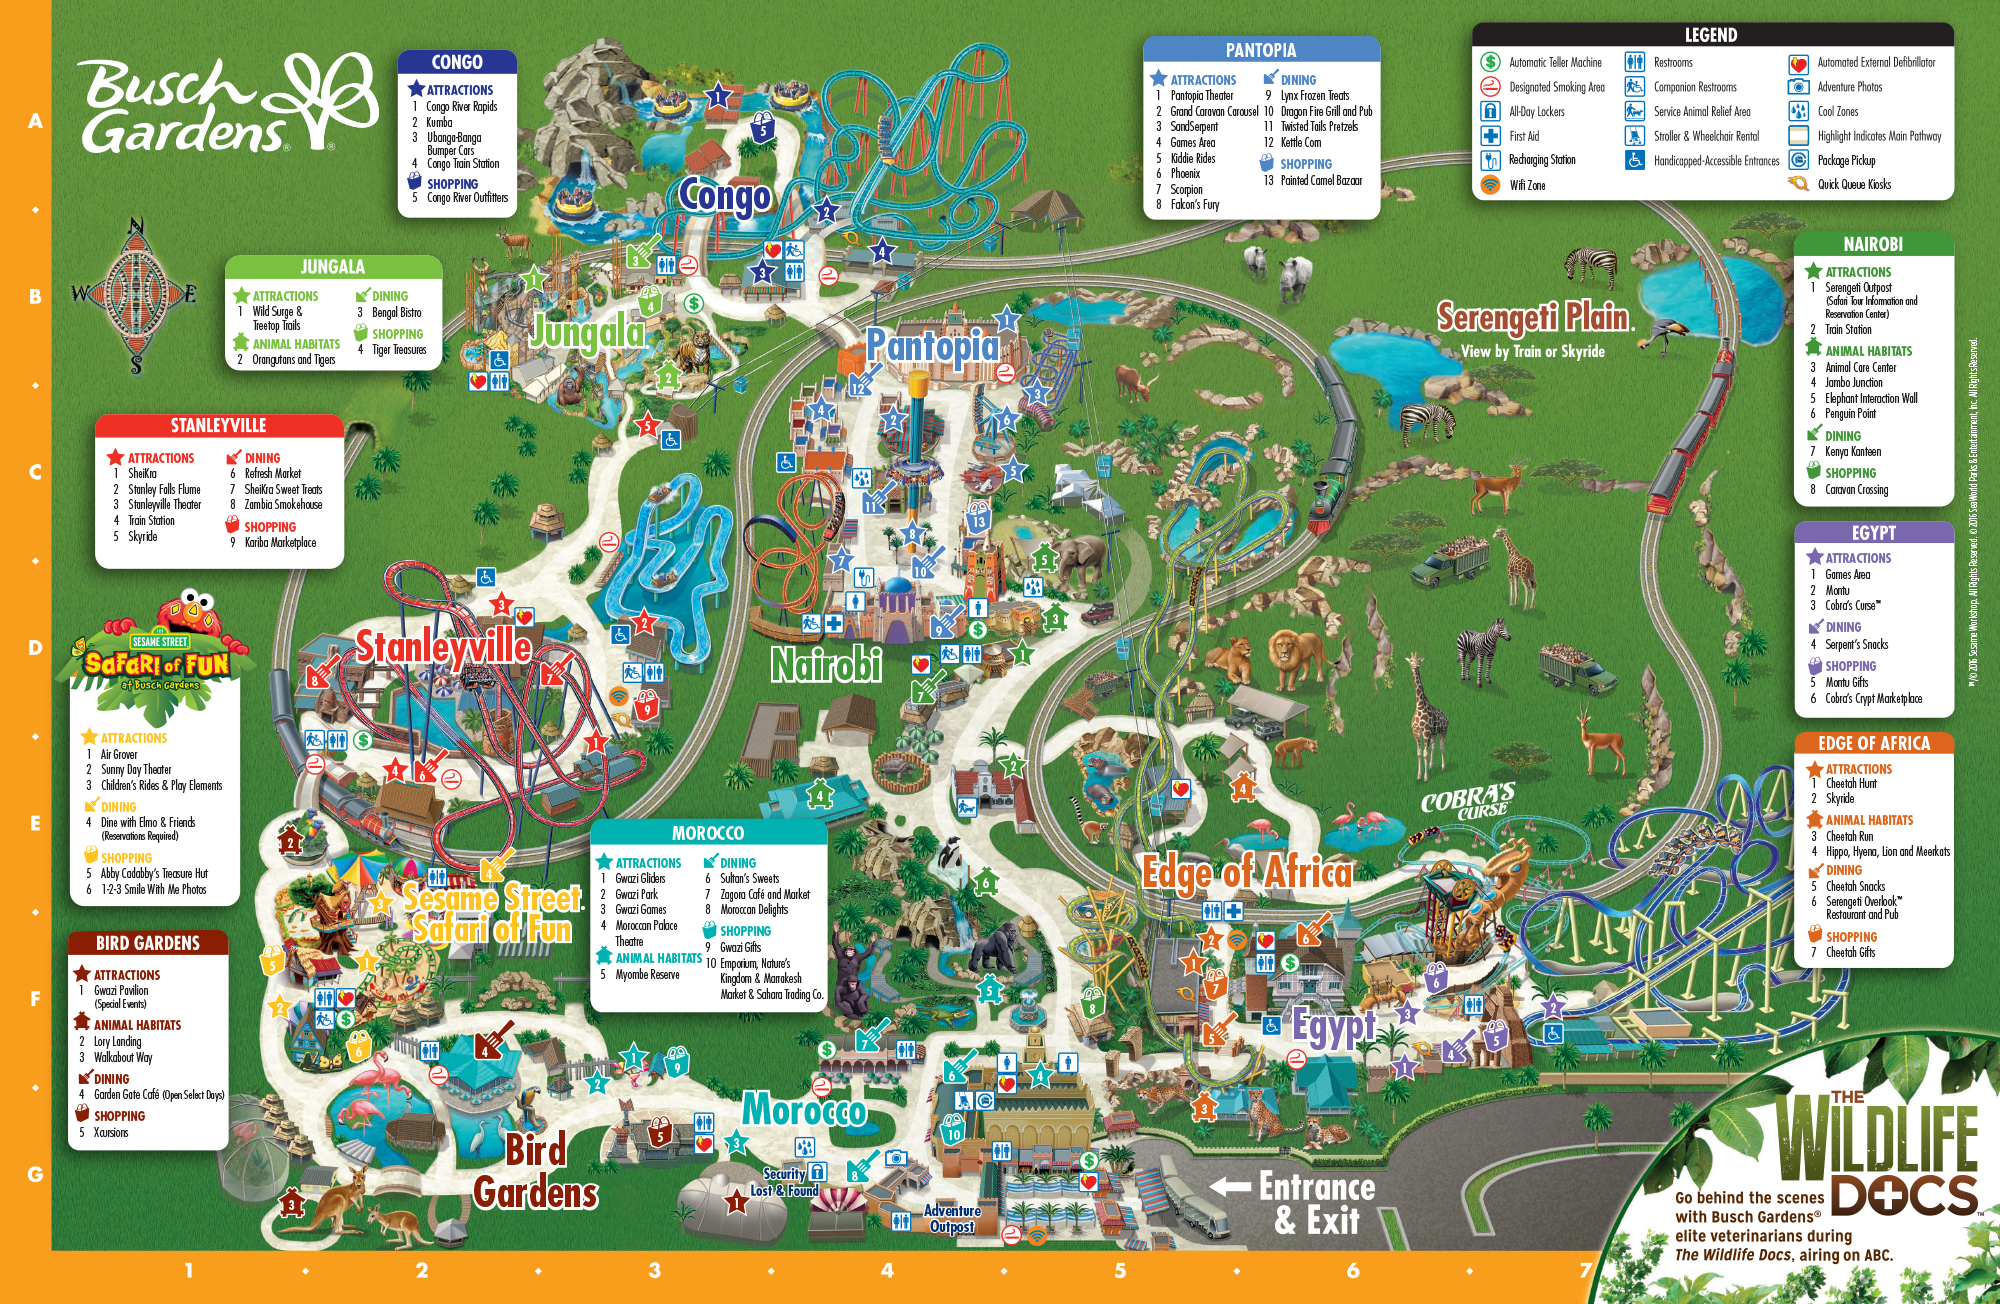 Charming Explore All Of Busch Gardens Tampa Bay By Viewing Our Park Map! Donu0027t